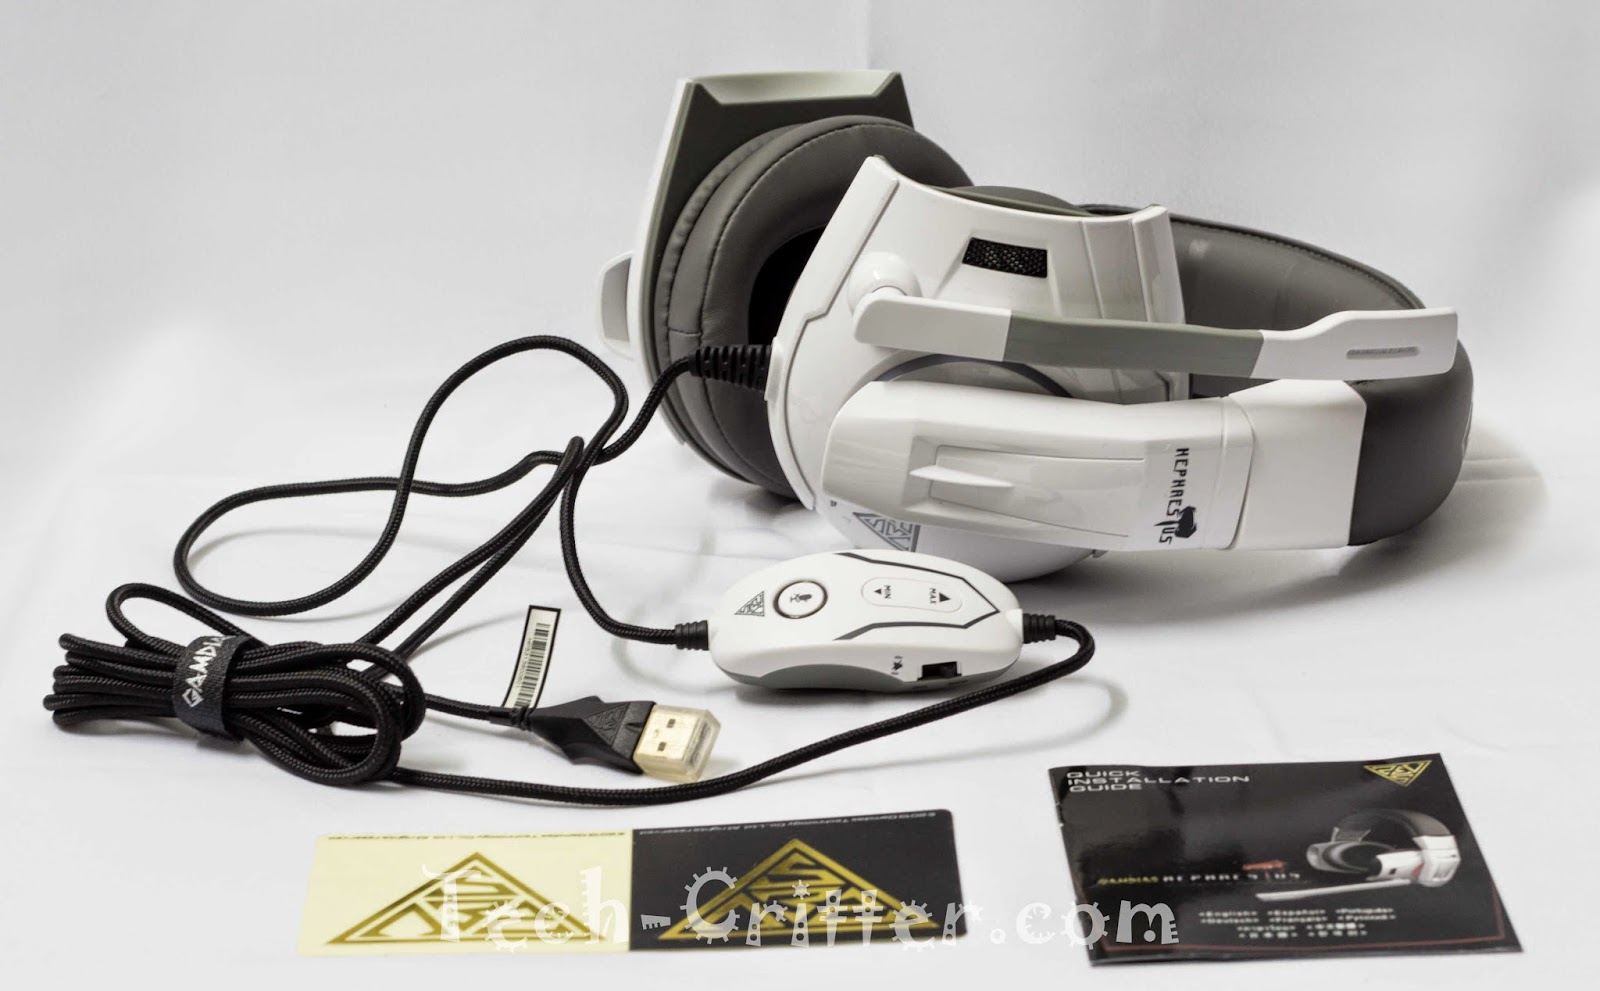 Unboxing & Review: Gamdias Hephaestus Gaming Headset 63